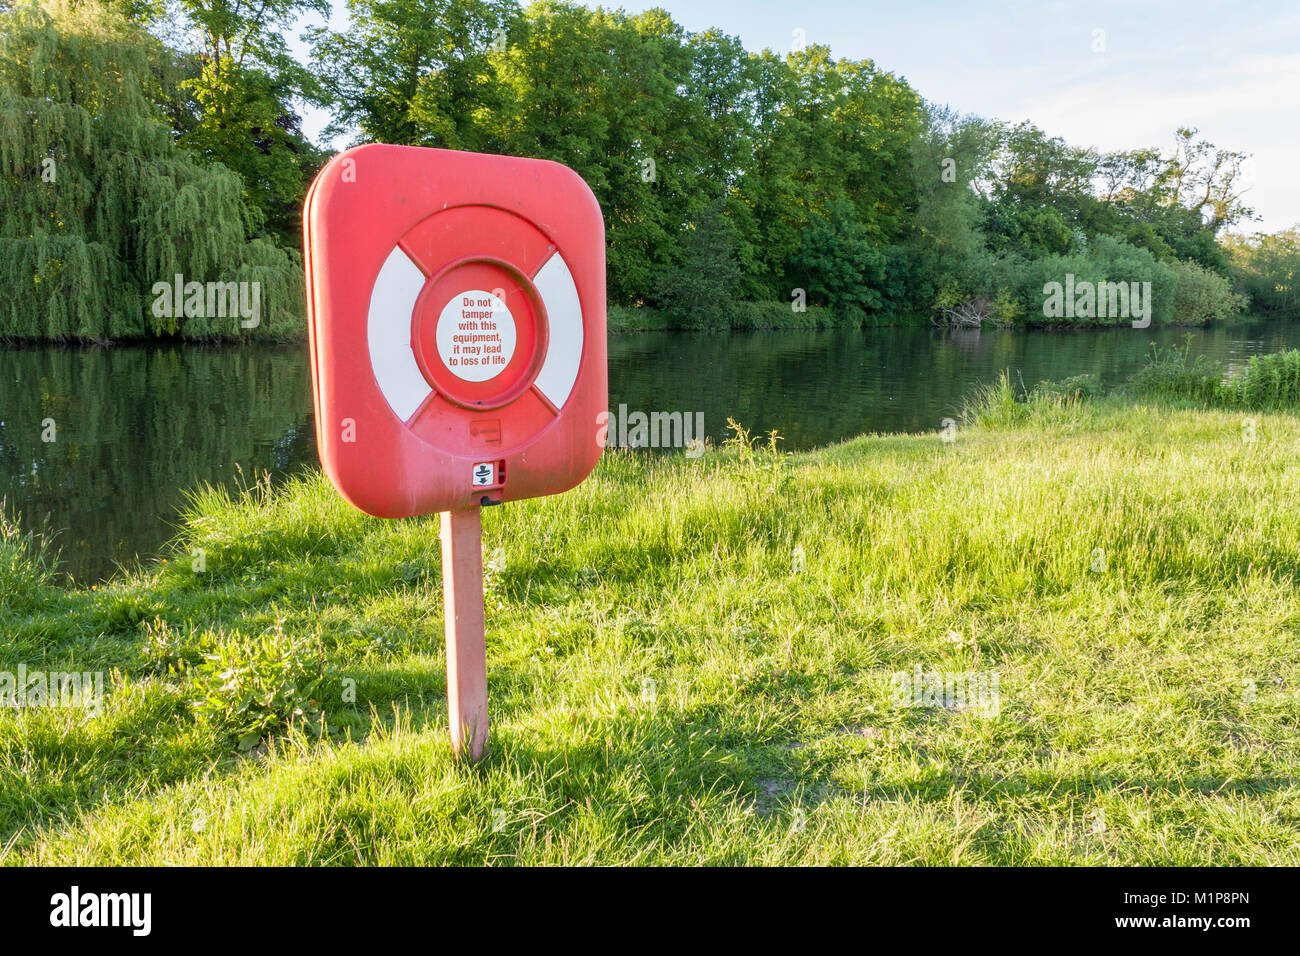 Lifebuoy, lifesaver or lifebelt on riverbank at Pangbourne on the River Thames in Berkshire, England, GB, UK - Stock Image